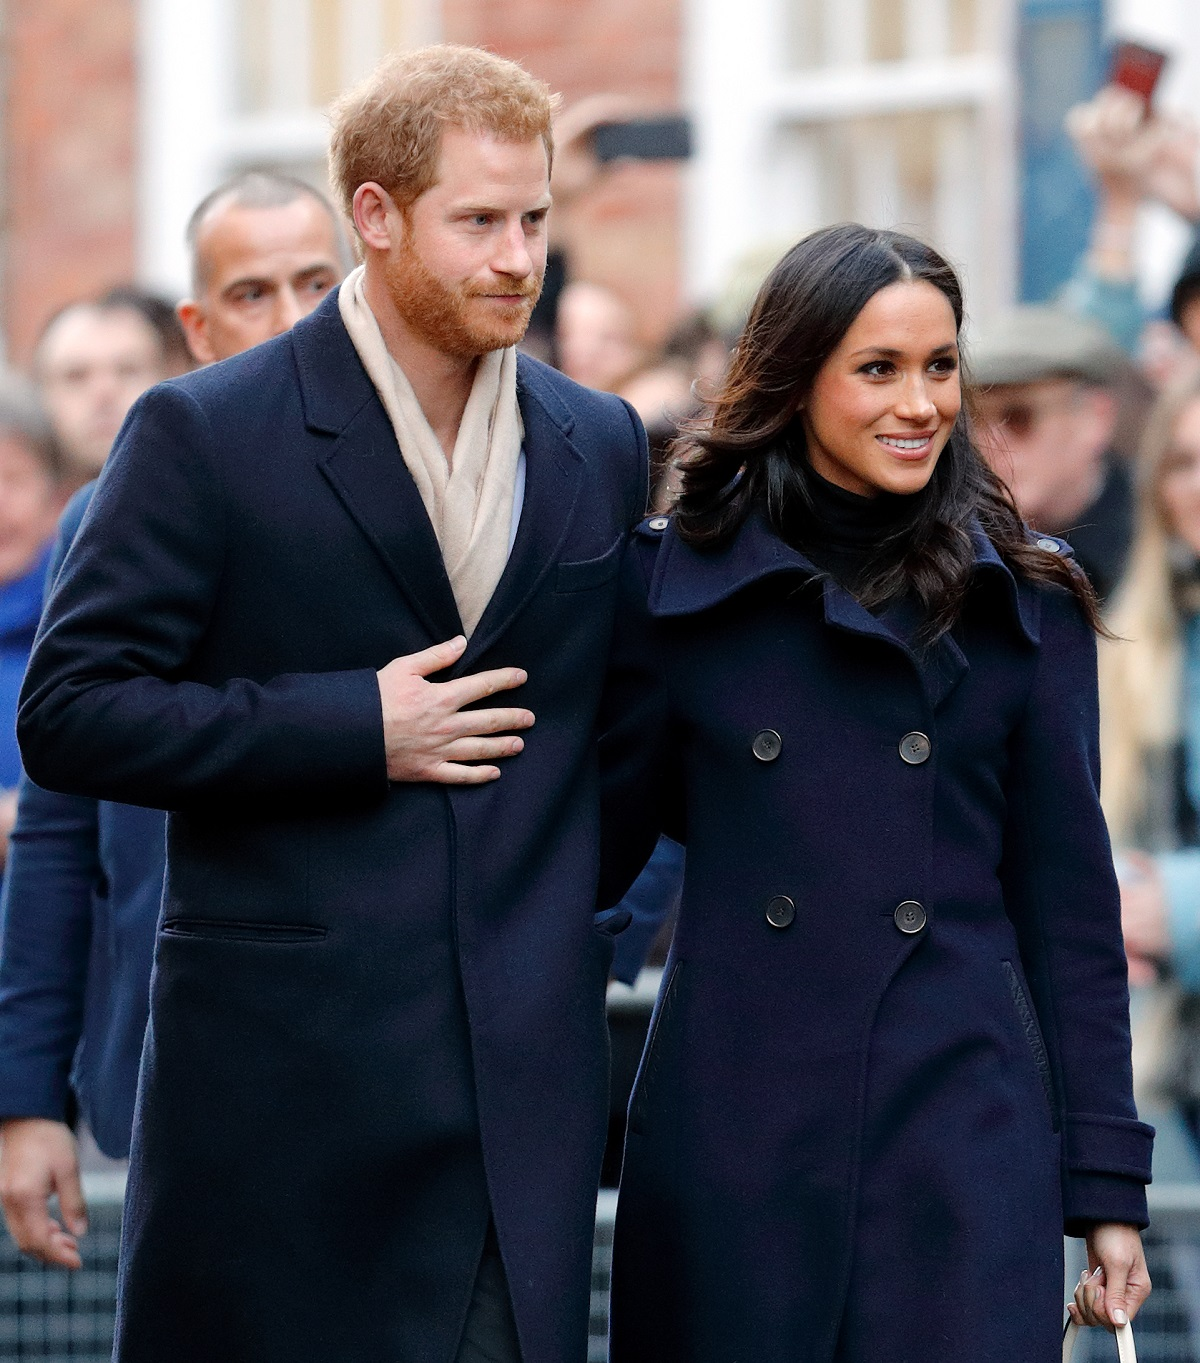 Prince Harry and Meghan Markle attend a Terrence Higgins Trust World AIDS Day charity fair at Nottingham Contemporary on December 1, 2017 in Nottingham, England.